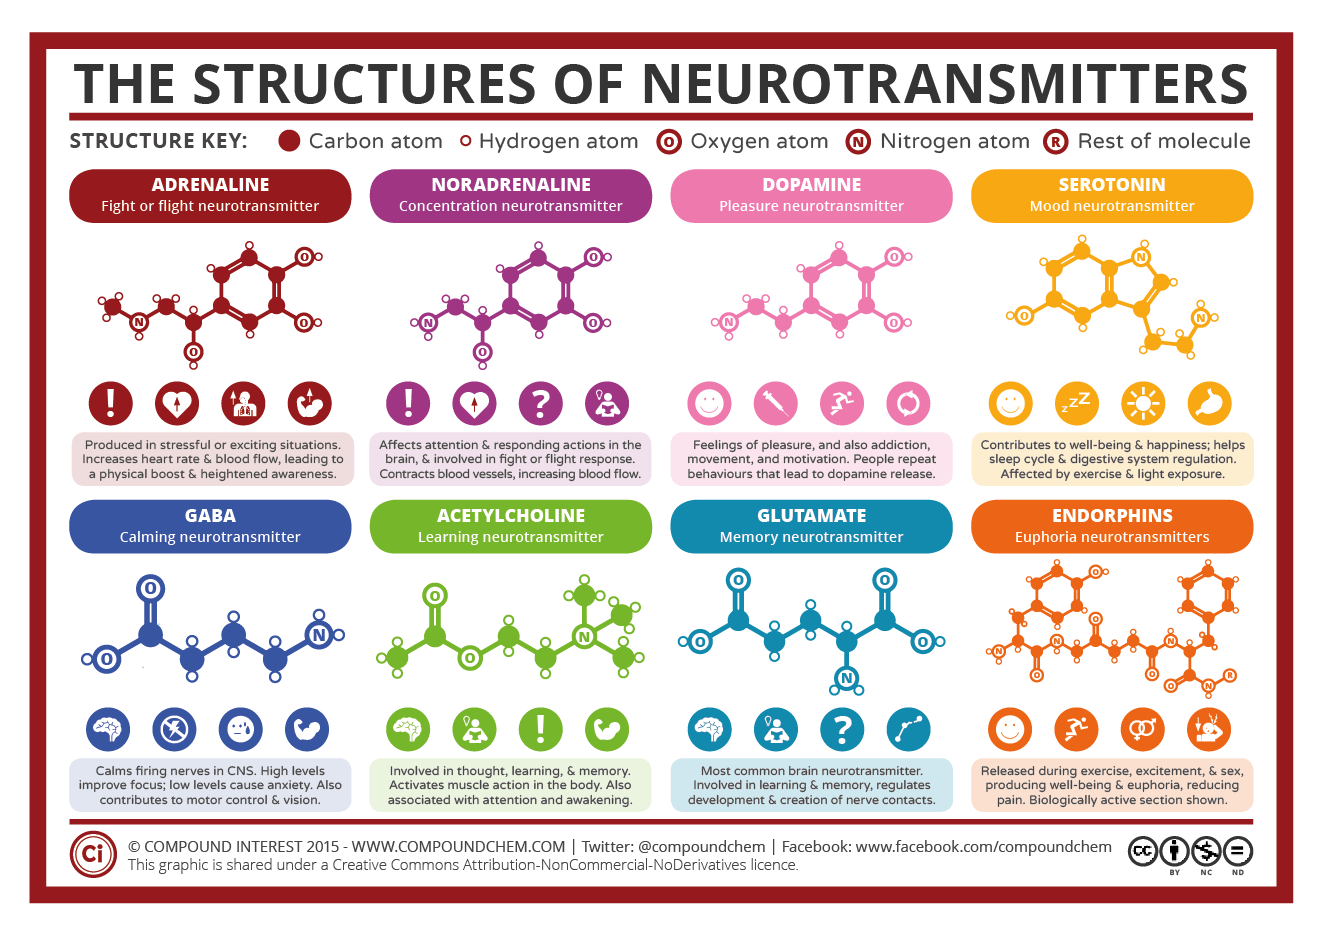 compoundchem.